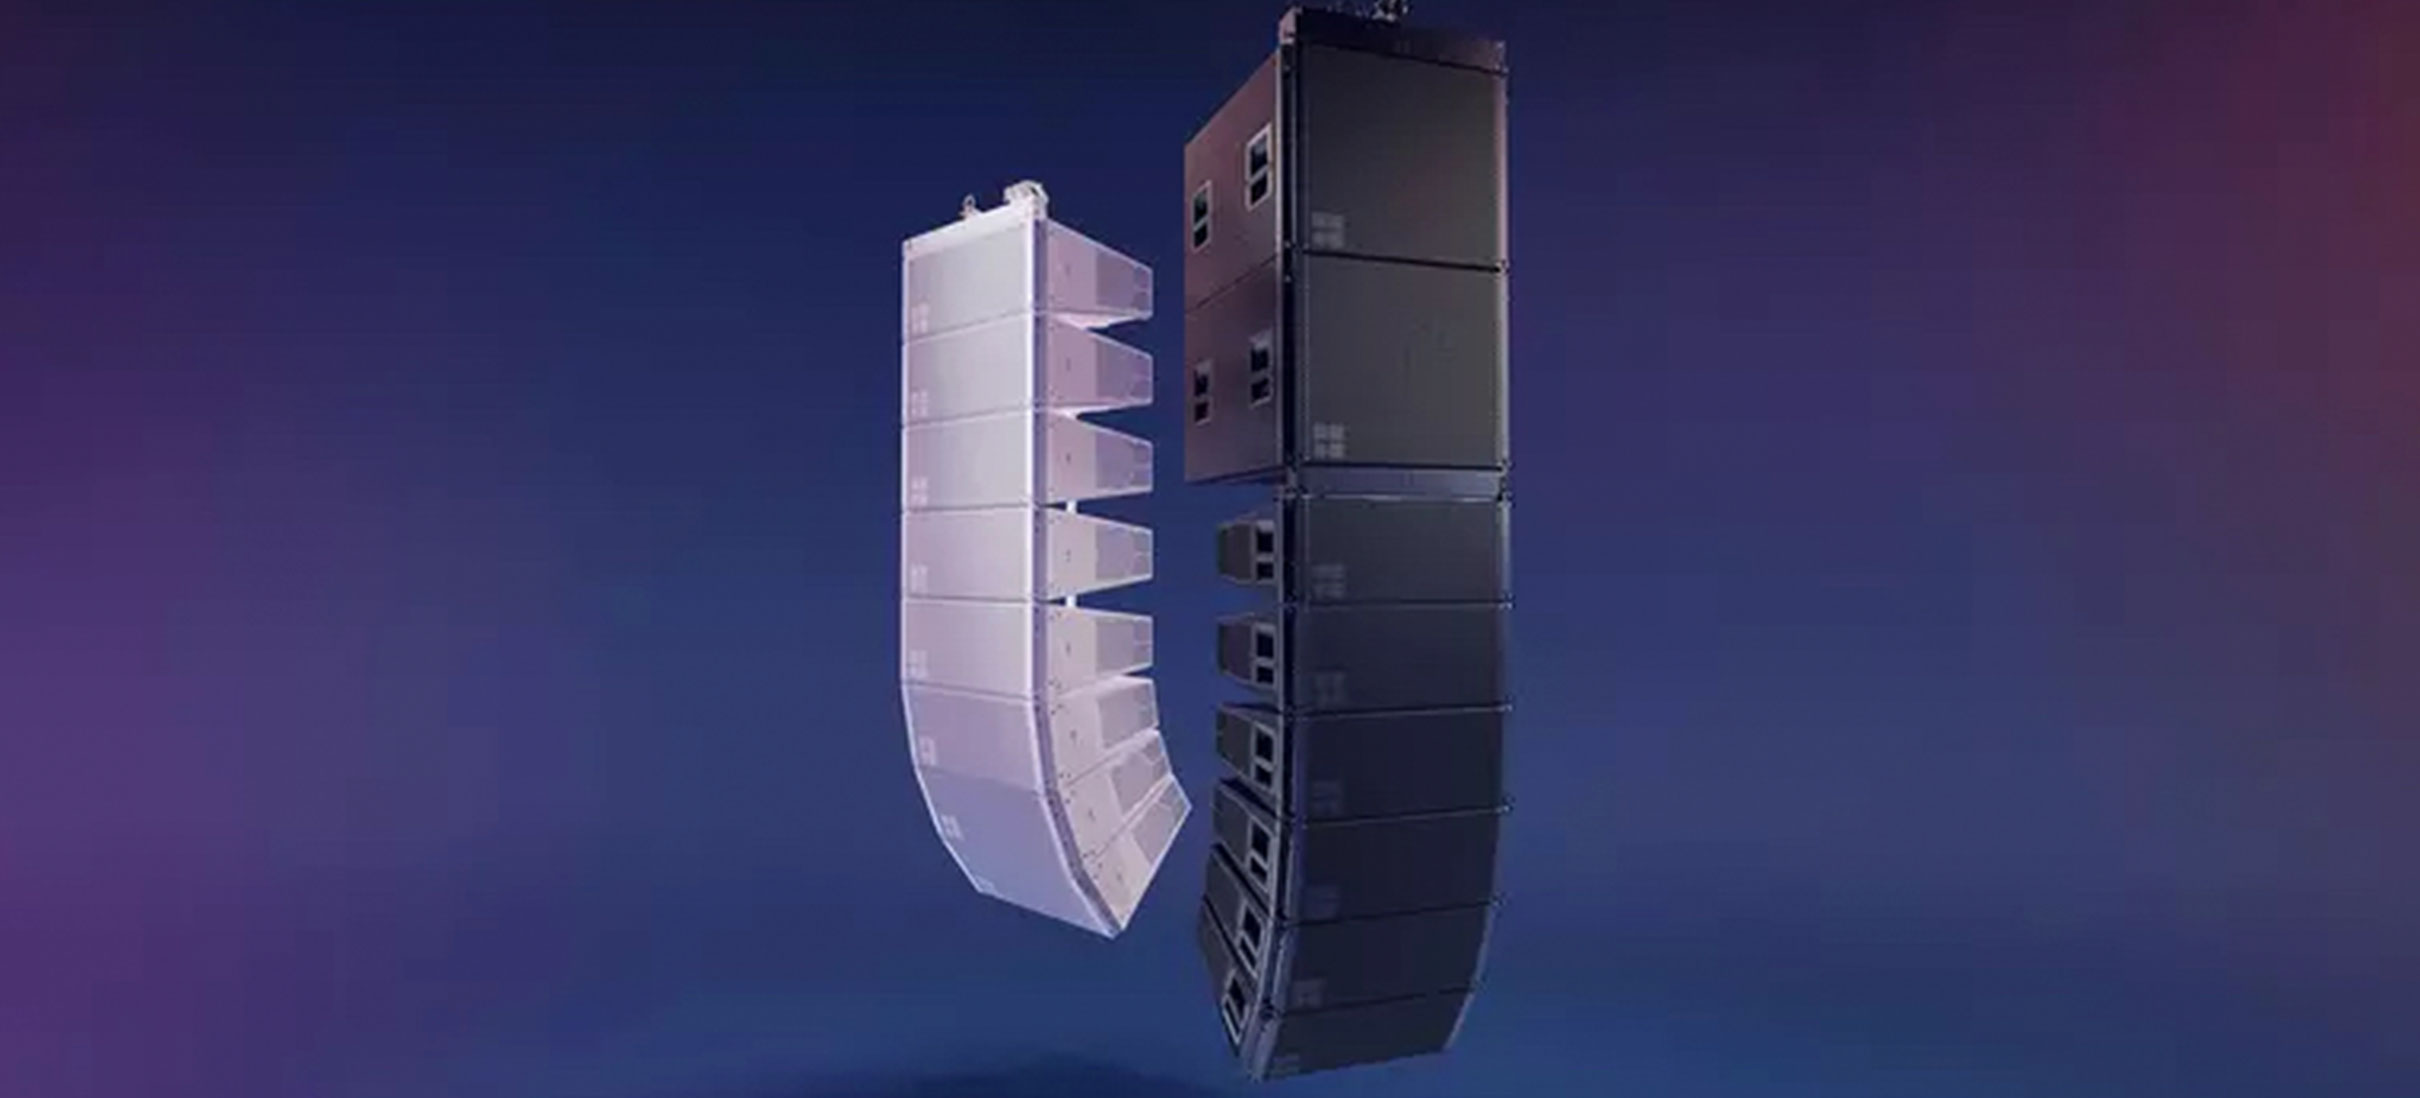 d&b introduces the XSL System compact line array, full system solution, to complete the SL-Series family.